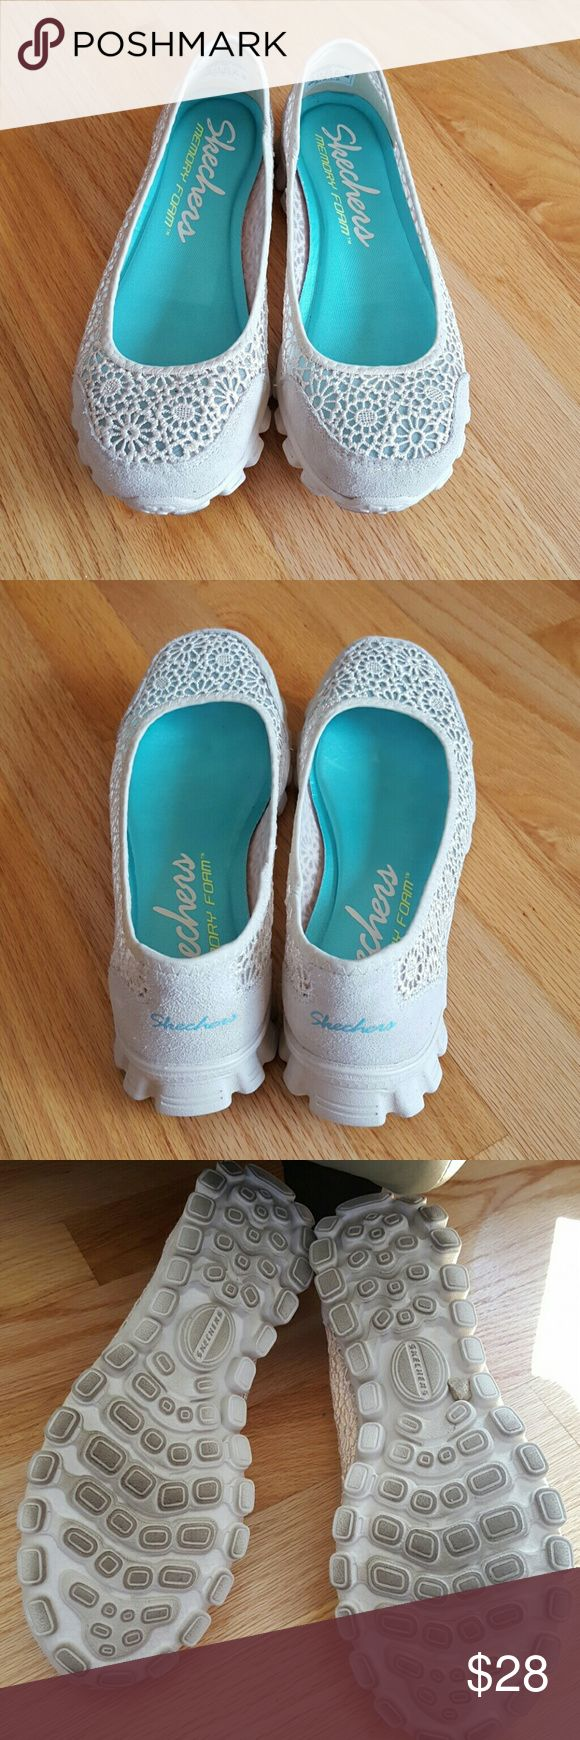 Skechers ballet flats Pretty ballet flats Memory foam Lace design Ivory color Worn a few times Skechers Shoes Flats & Loafers